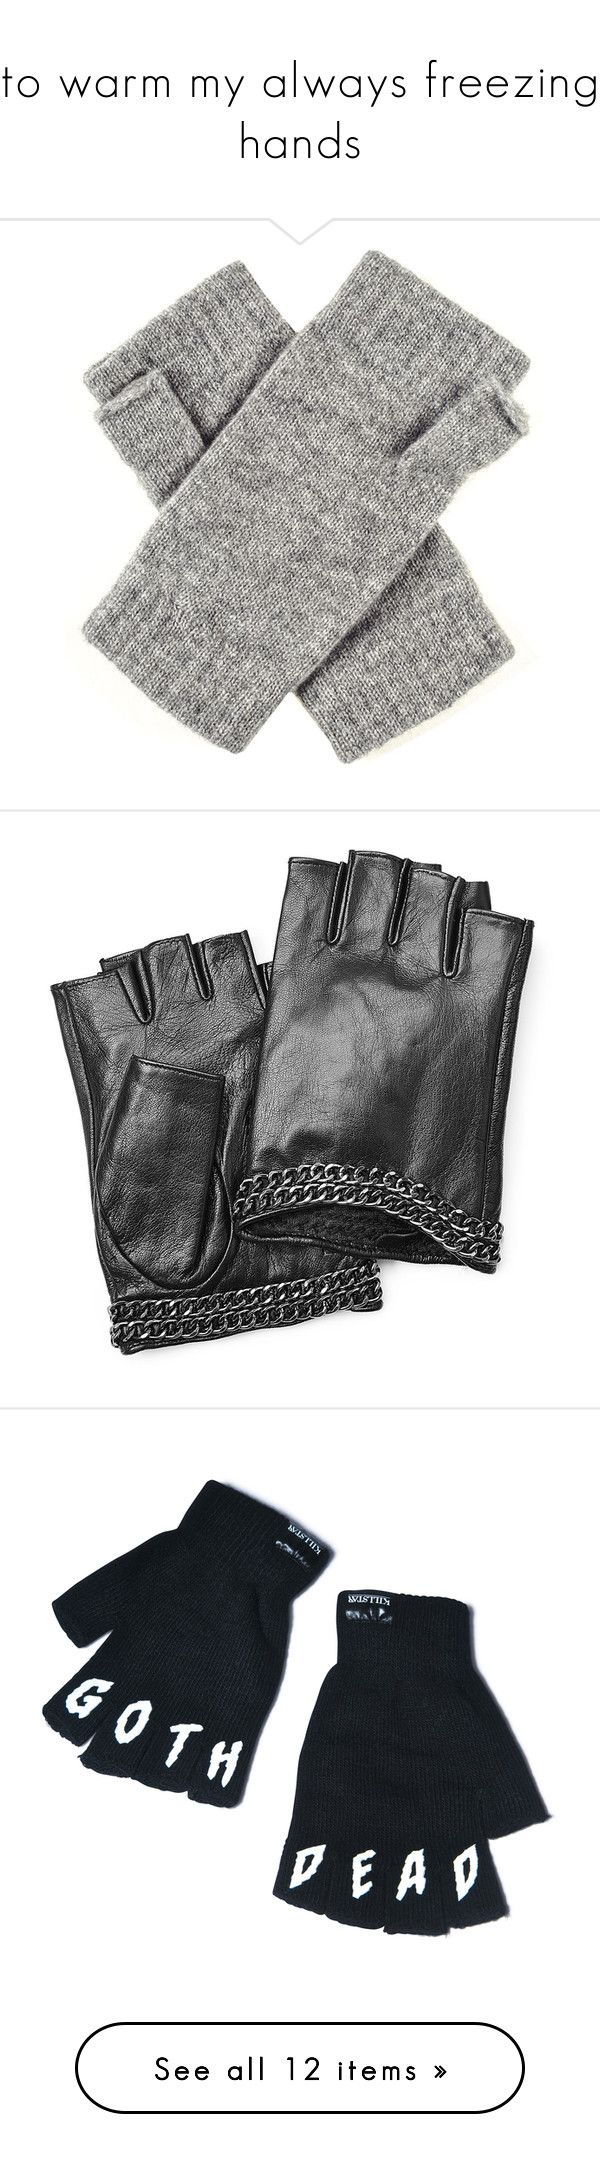 Black leather gloves with red buttons -  To Warm My Always Freezing Hands By Madhattermadi Liked On Polyvore Featuring Accessories